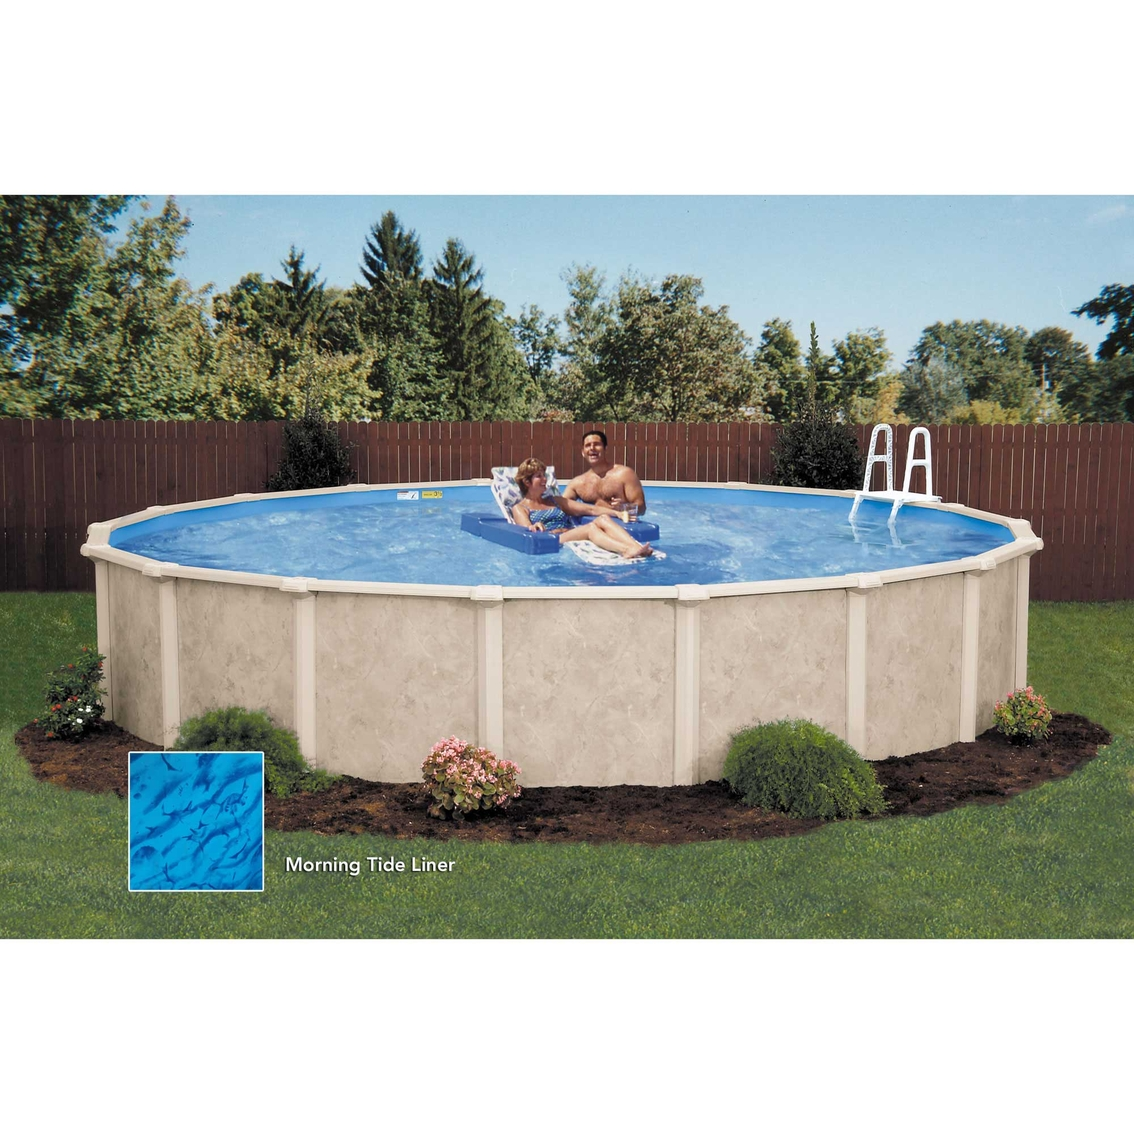 Lomart sandstone round above ground pool package pools for Above ground pool packages cheap